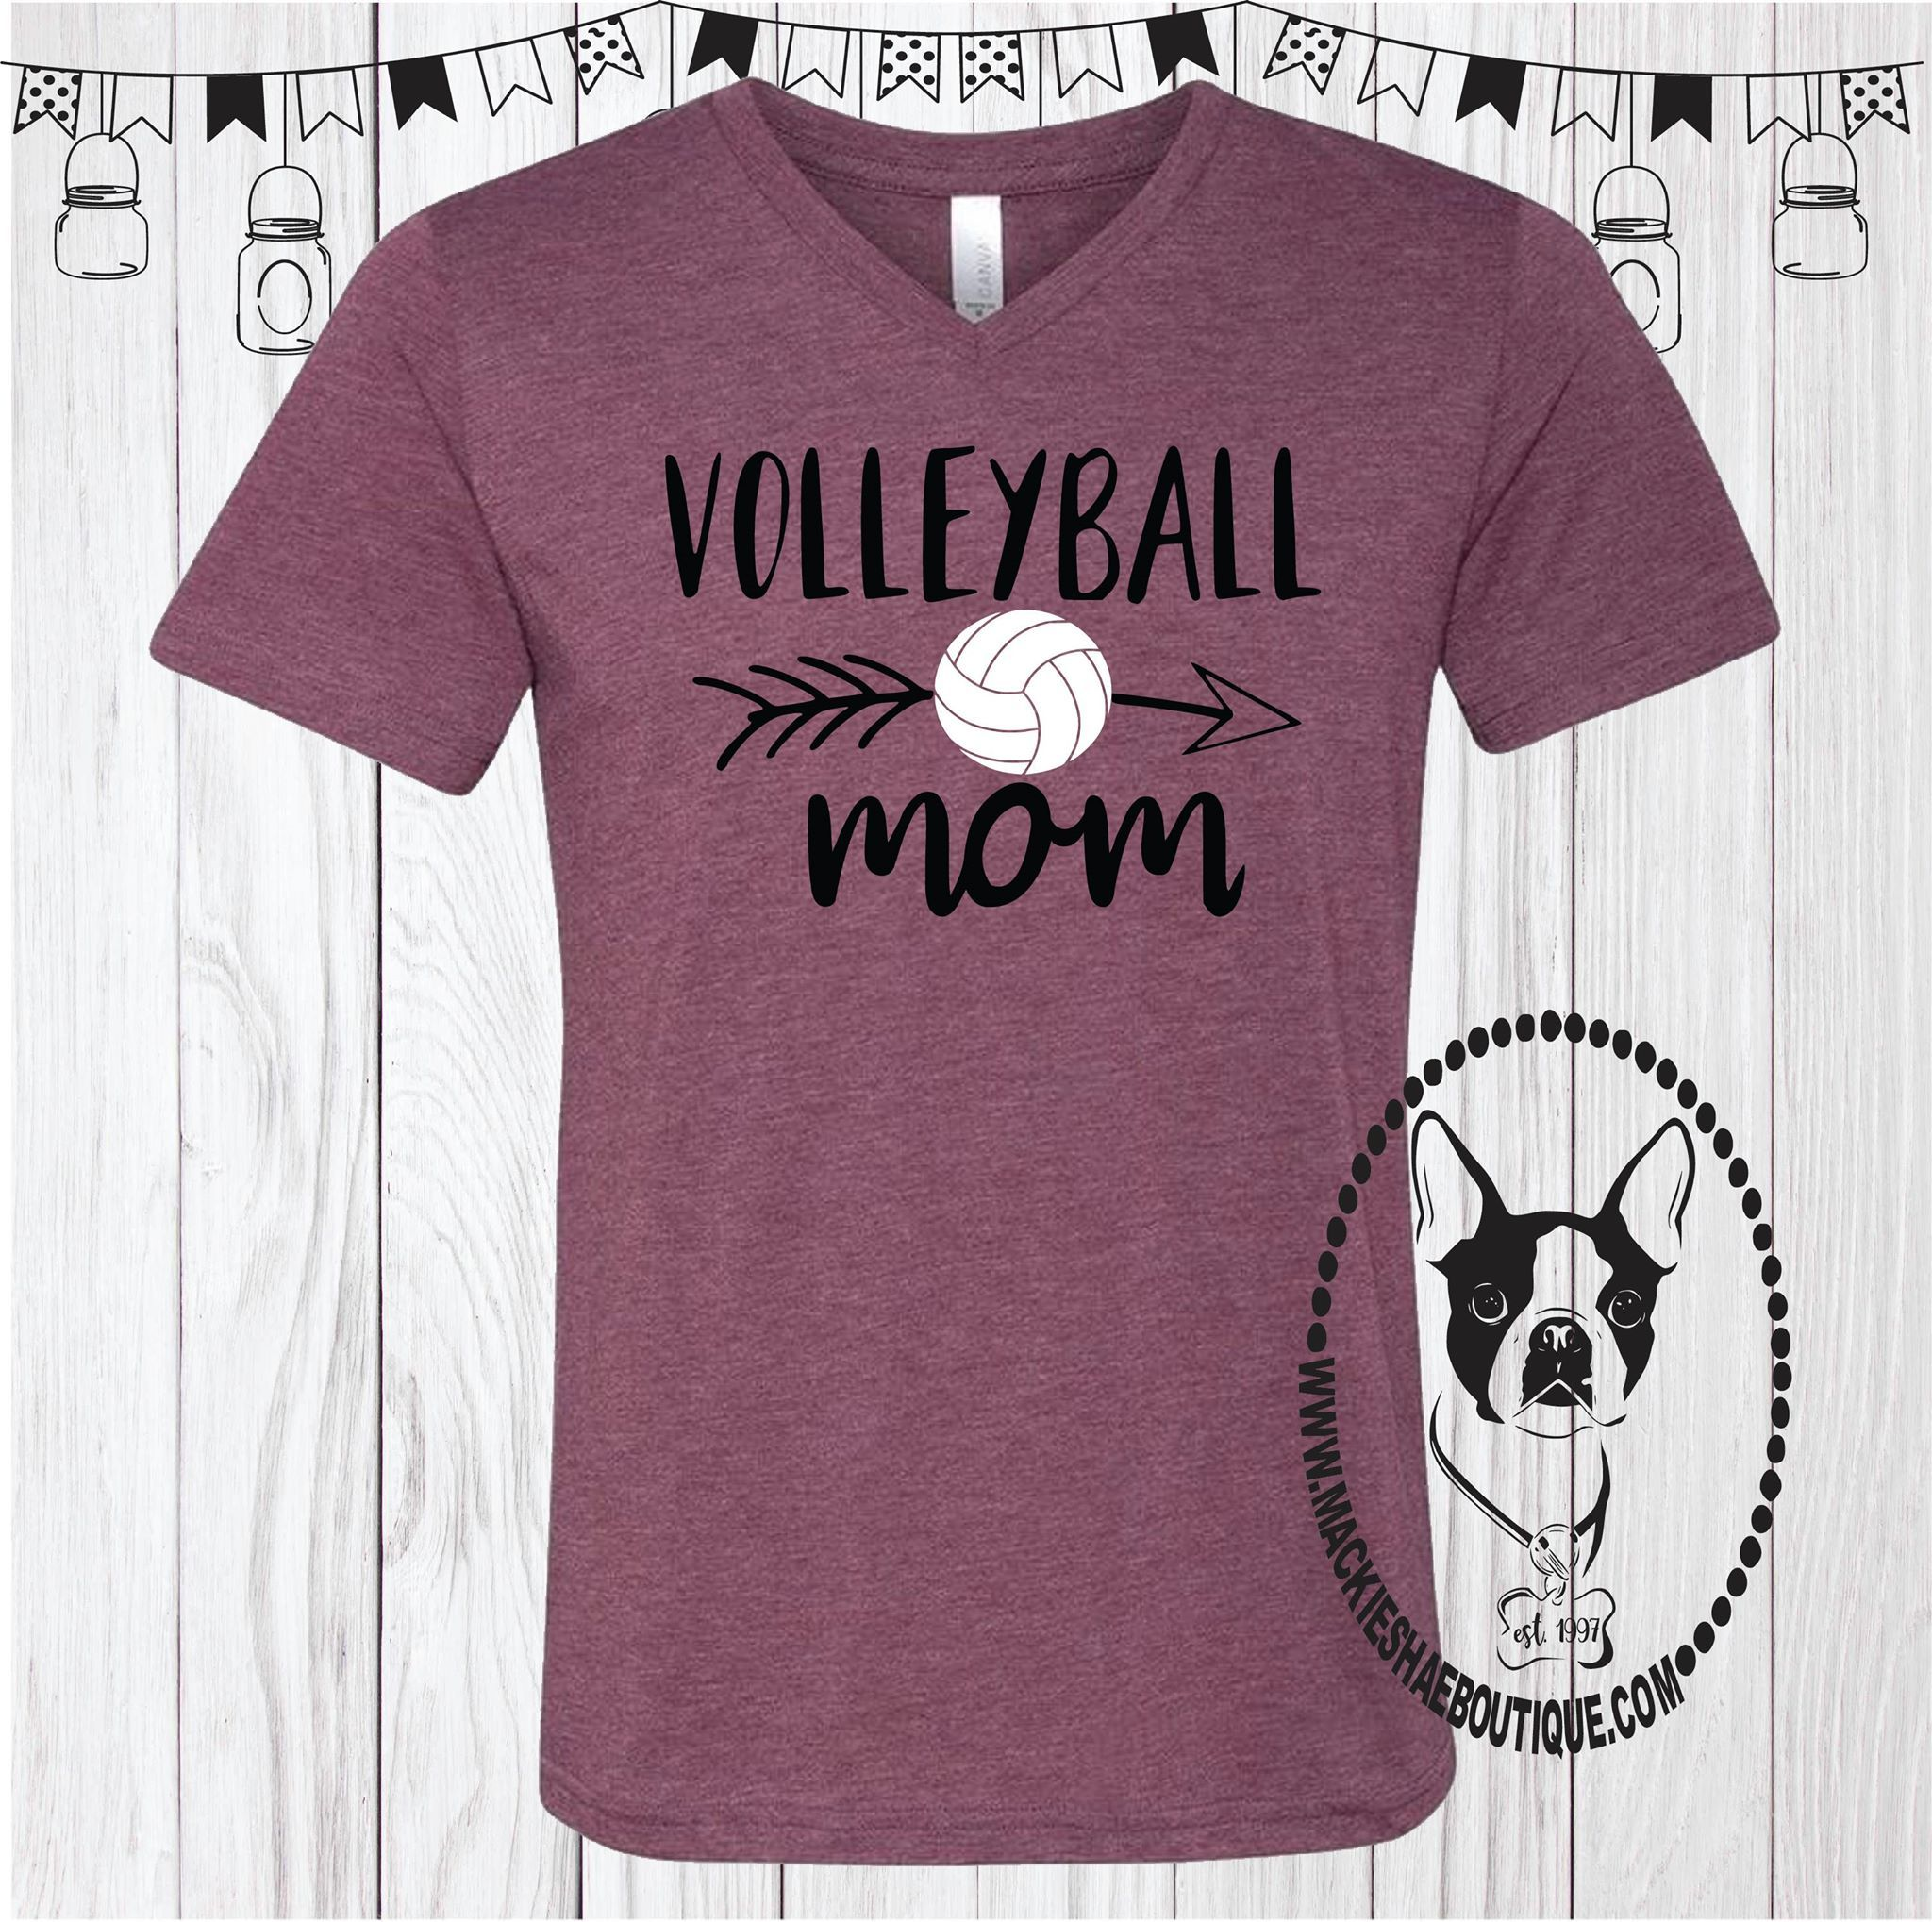 Volleyball Mom Volleyball Shirt Designs Volleyball Mom Shirts Design Volleyball Tshirt Designs